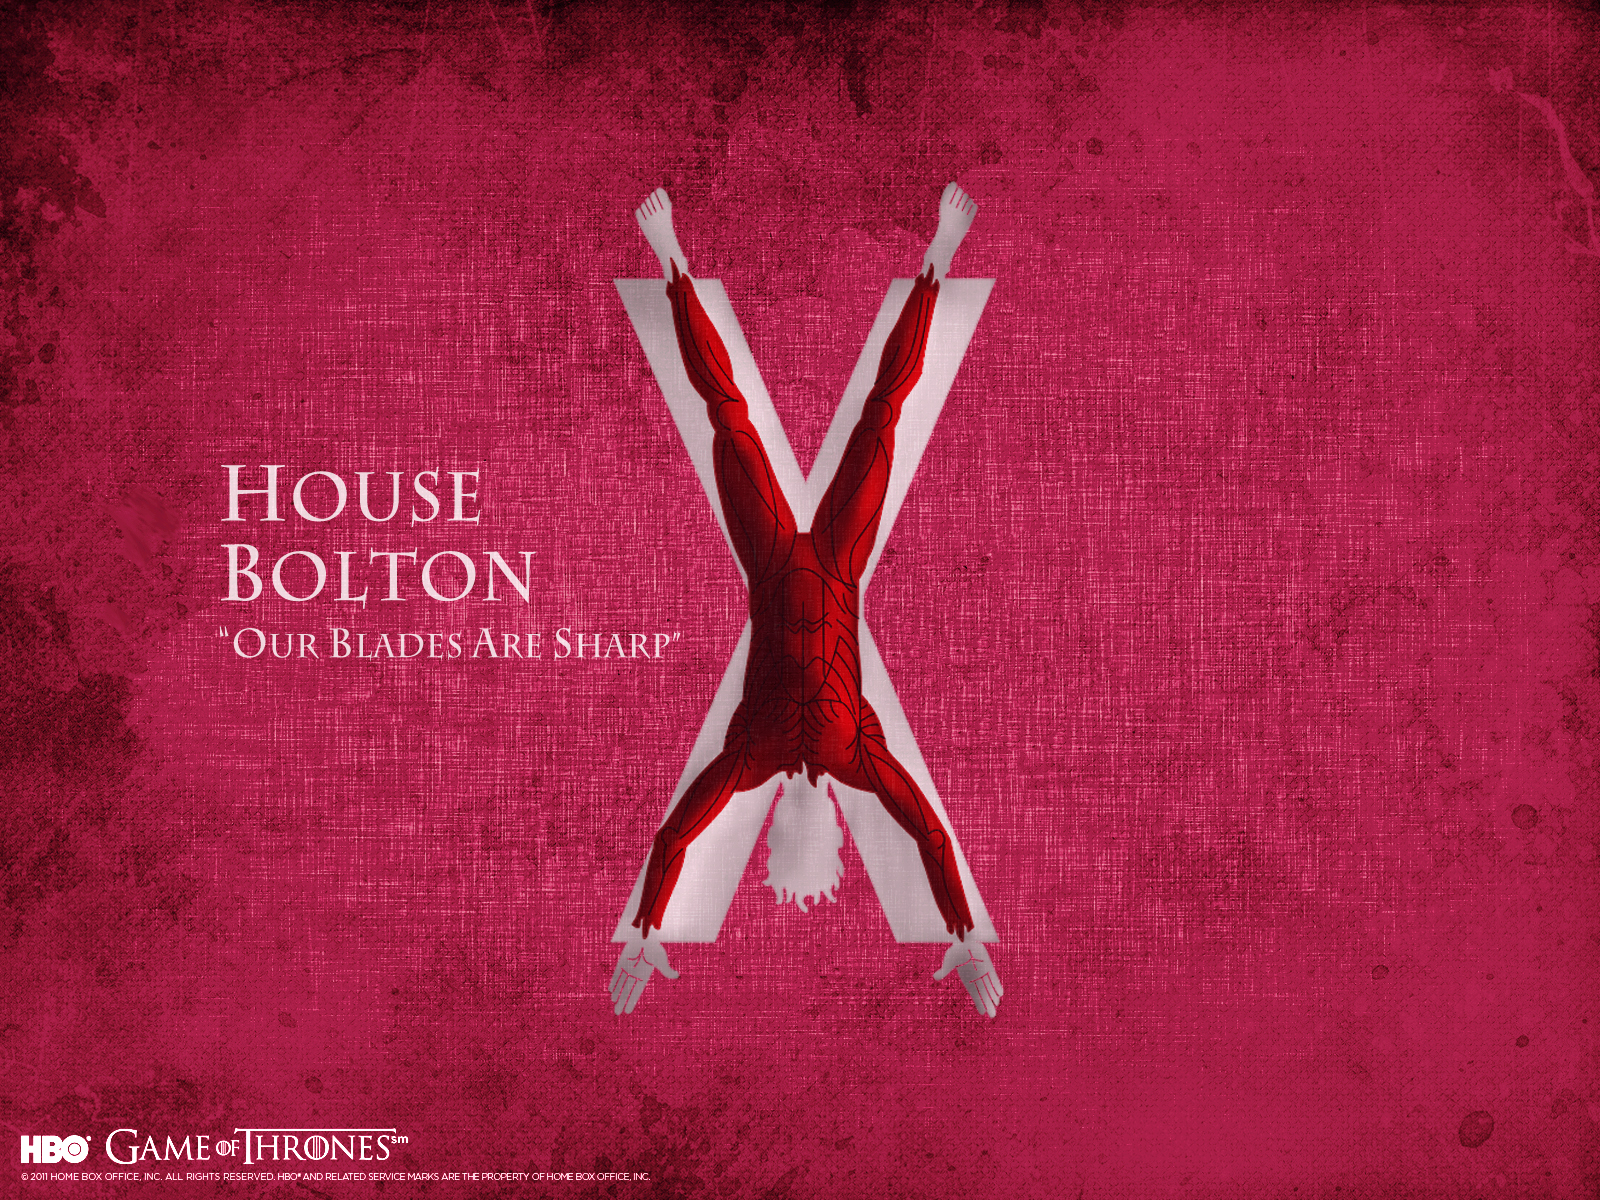 House bolton images house bolton hd wallpaper and for House of wallpaper